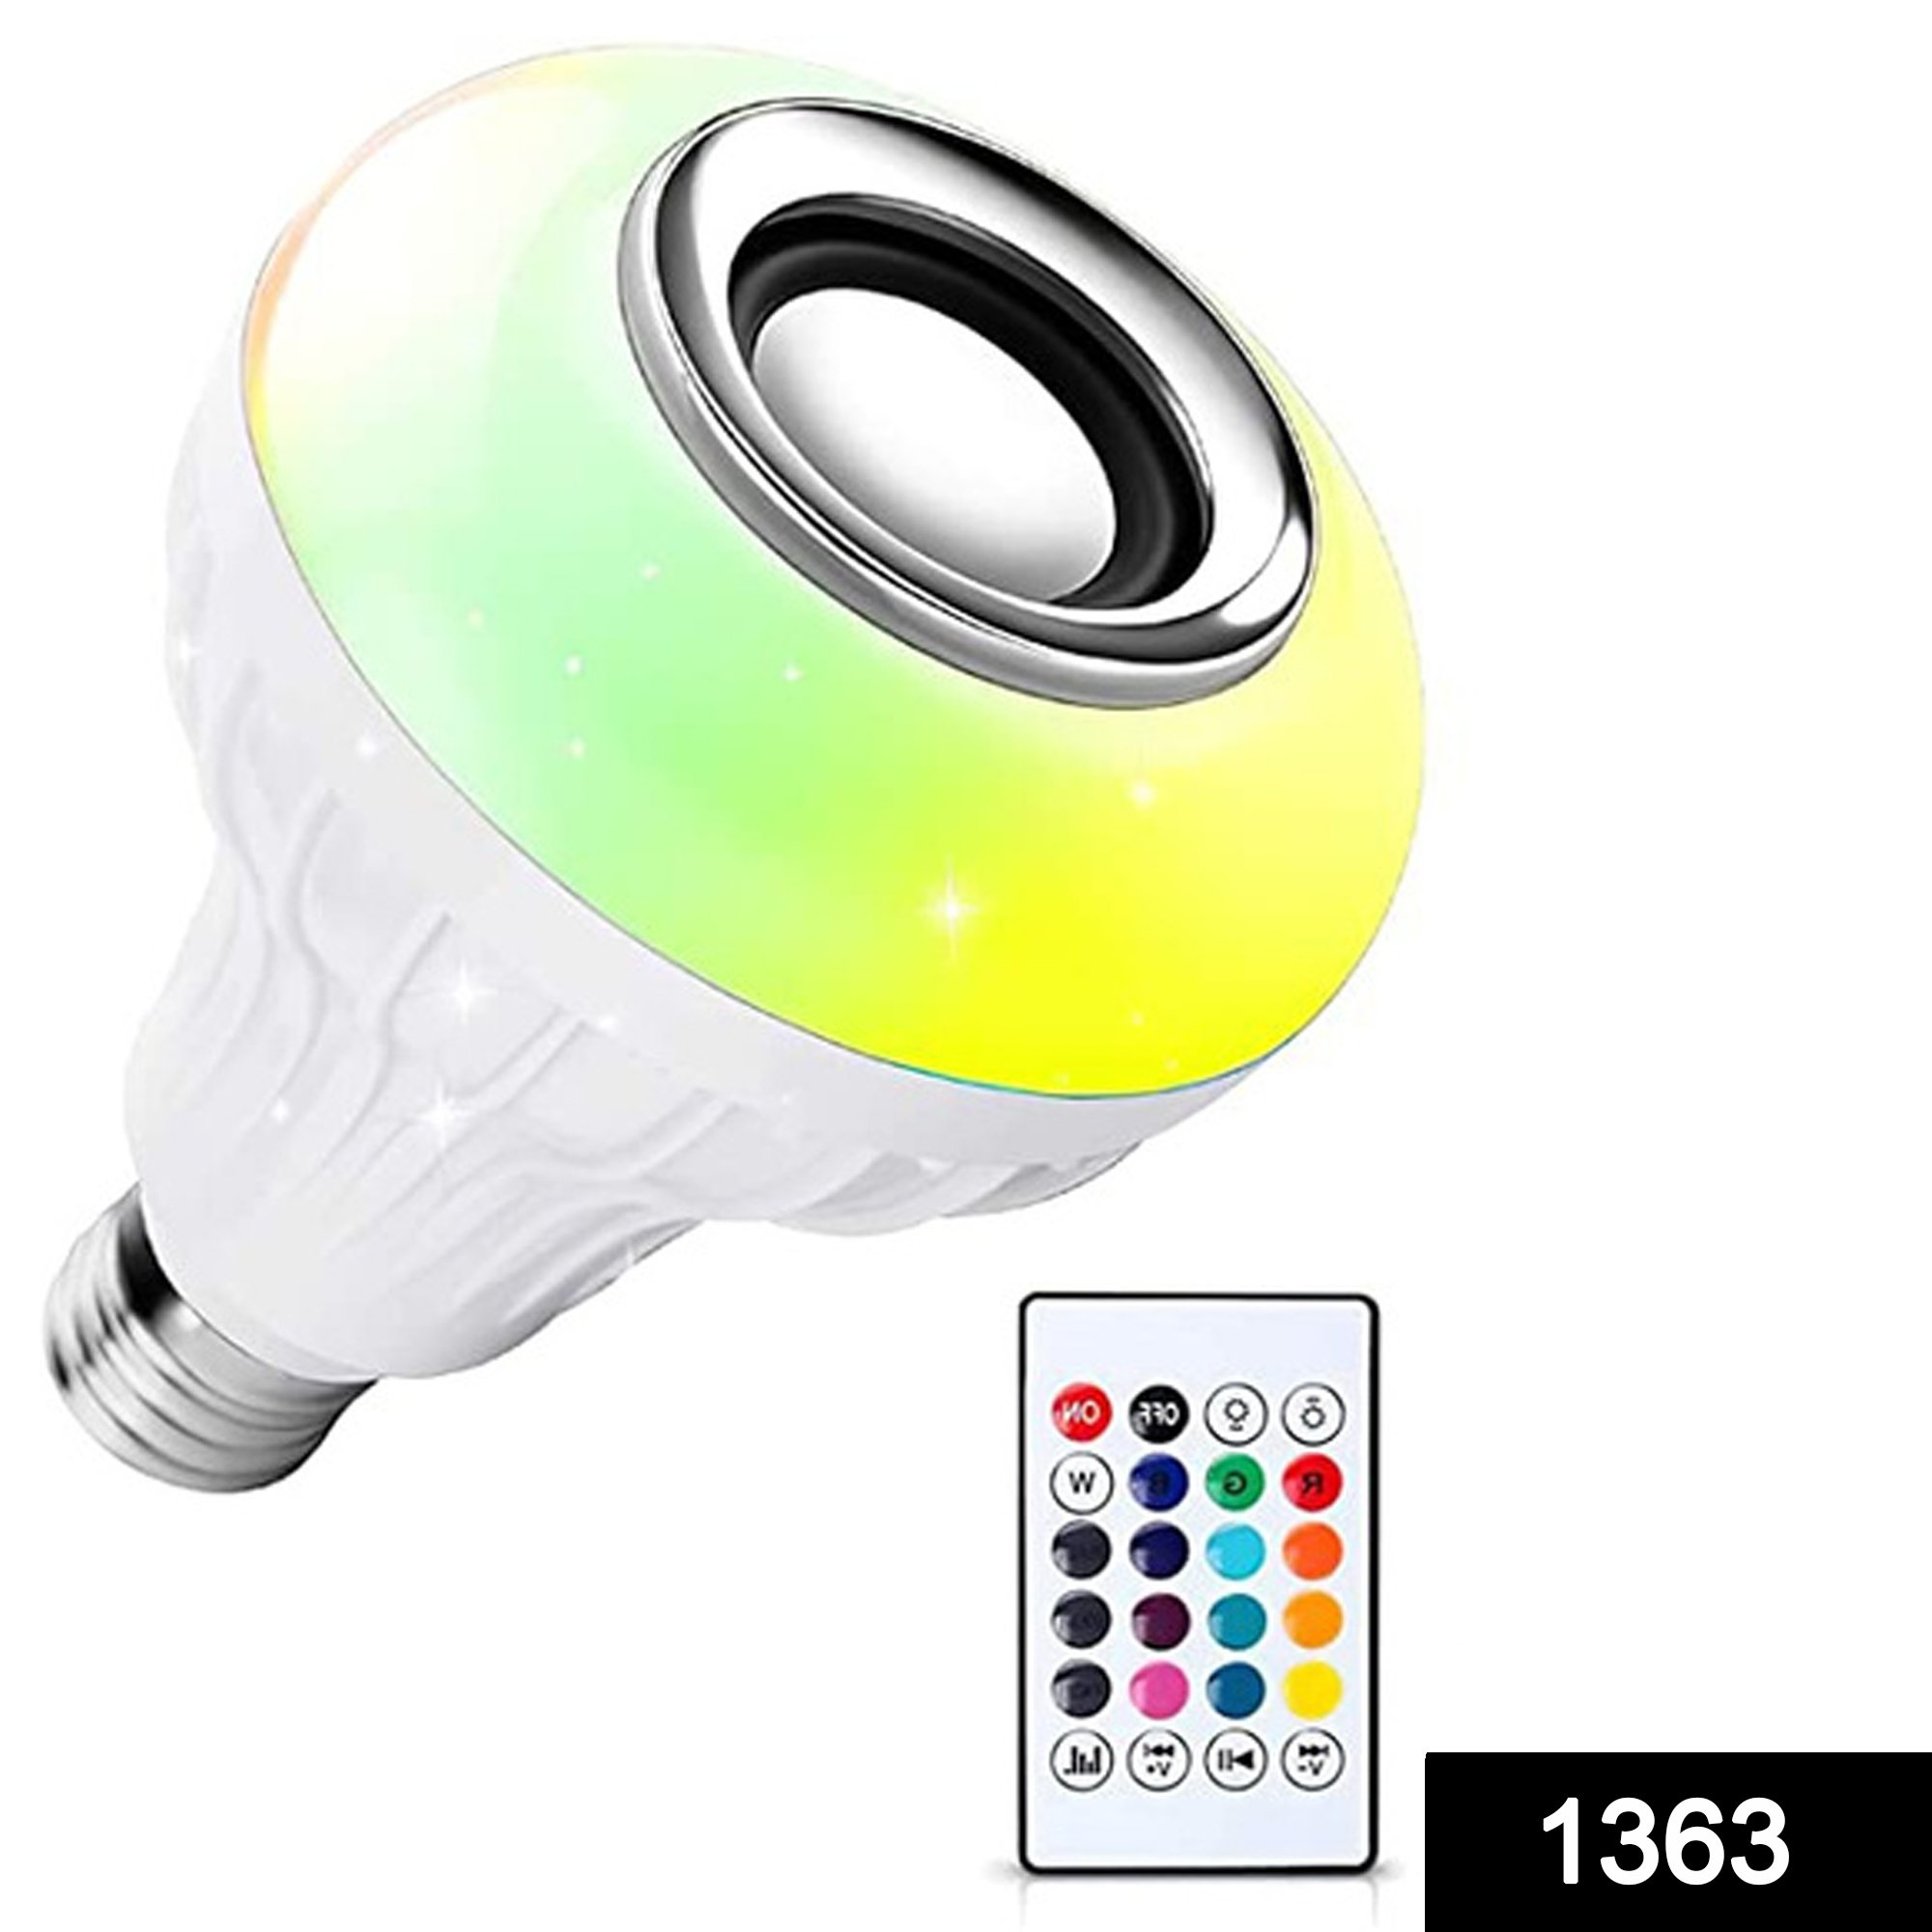 1363 Wireless Bluetooth Sensor 12W Music Multicolor LED Bulb with Remote Controller -